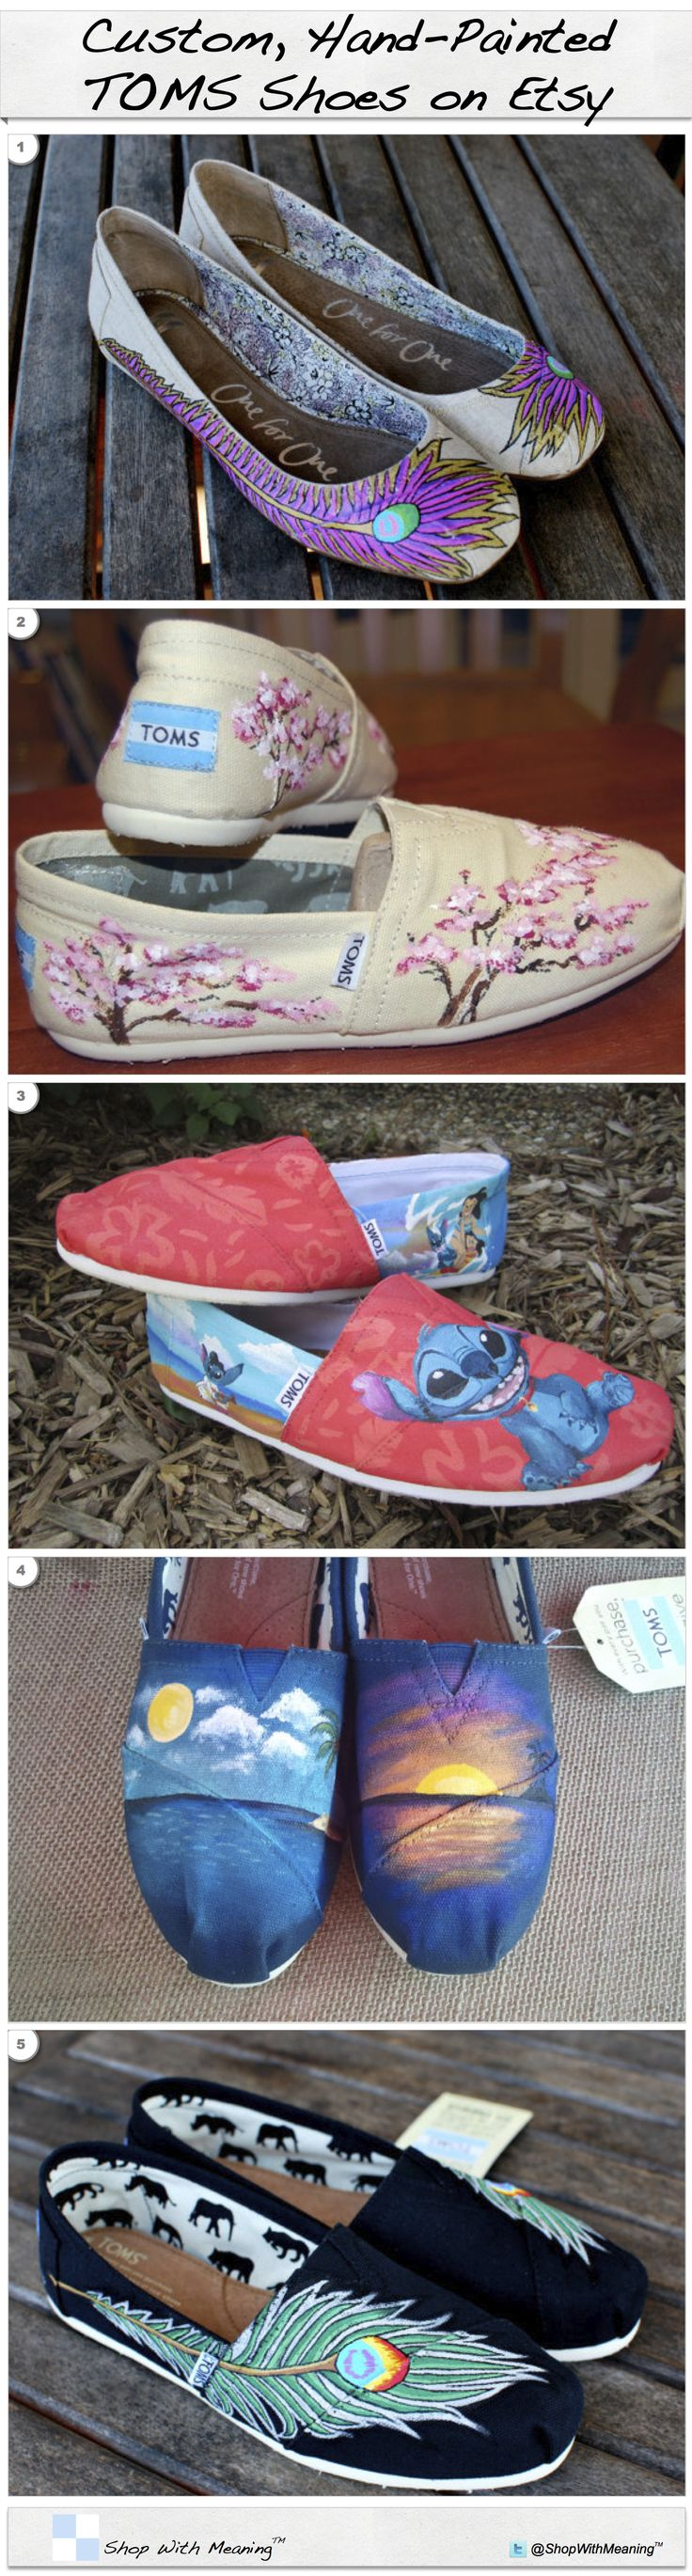 Stunning Hand-Painted, Custom TOMS Shoes featured on http://ShopWithMeaning.org/CustomTOMS #OneforOne